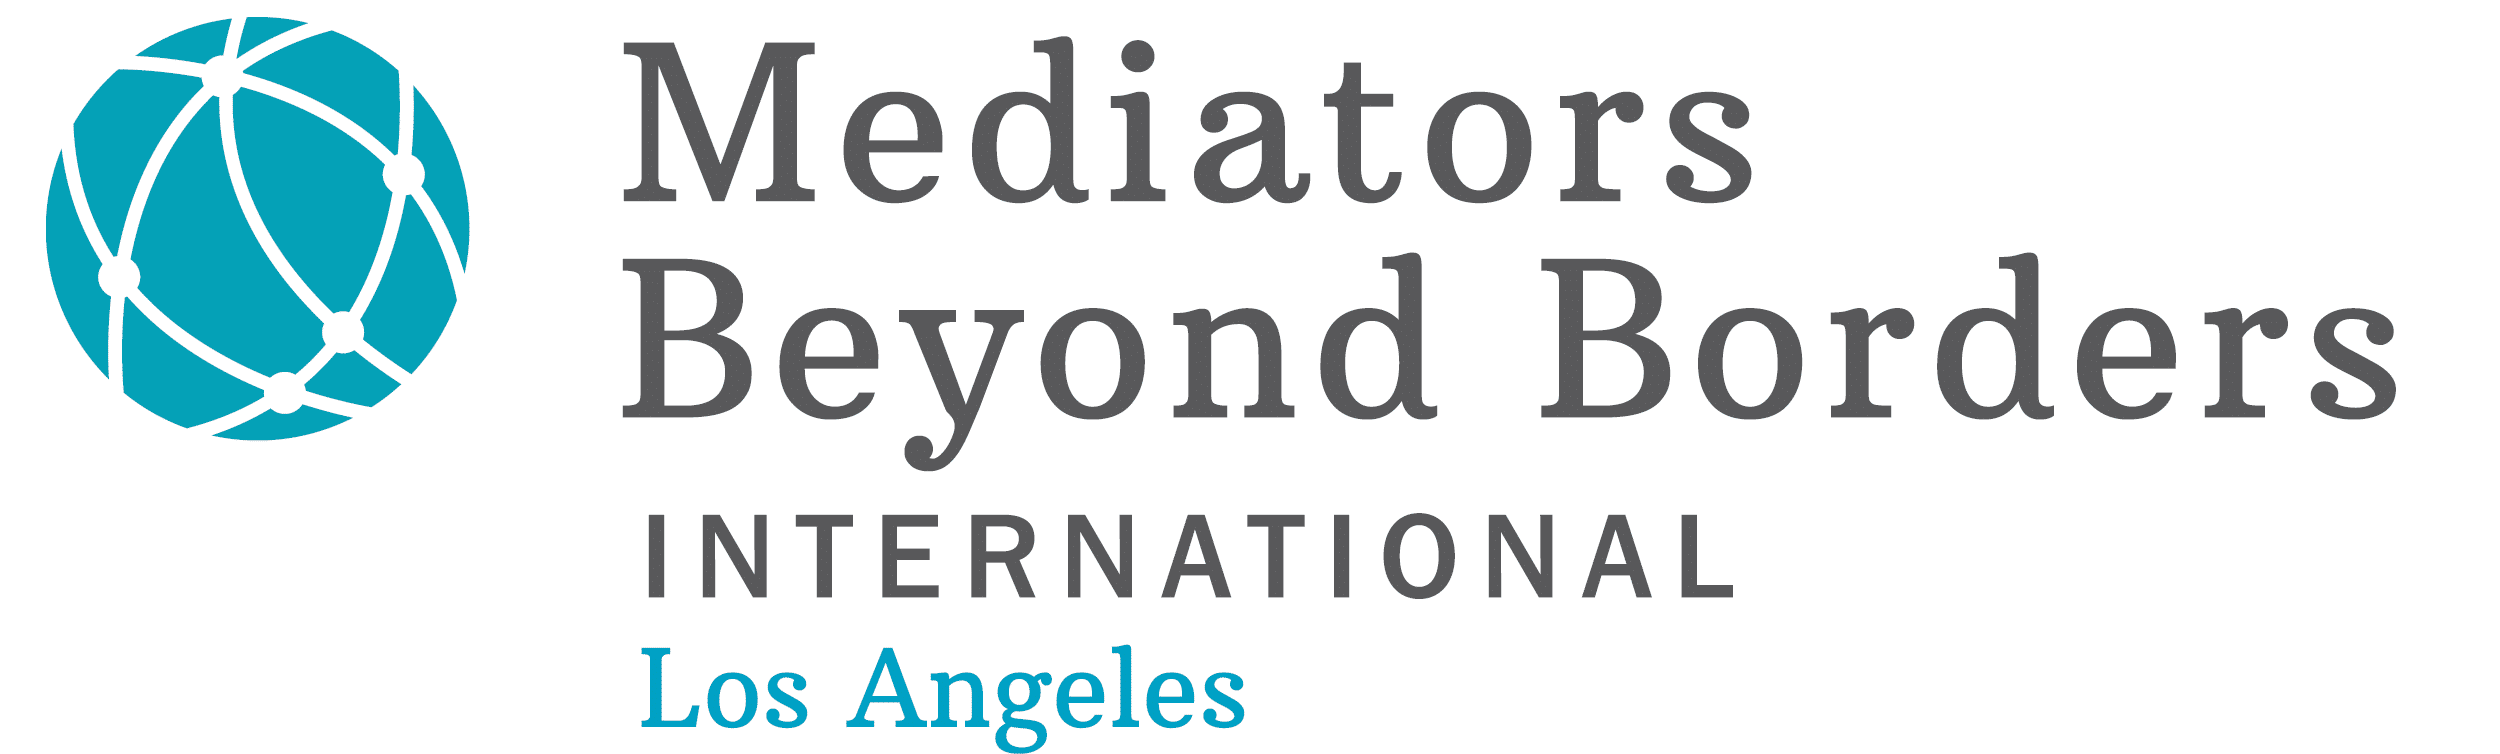 Mediators Beyond Borders